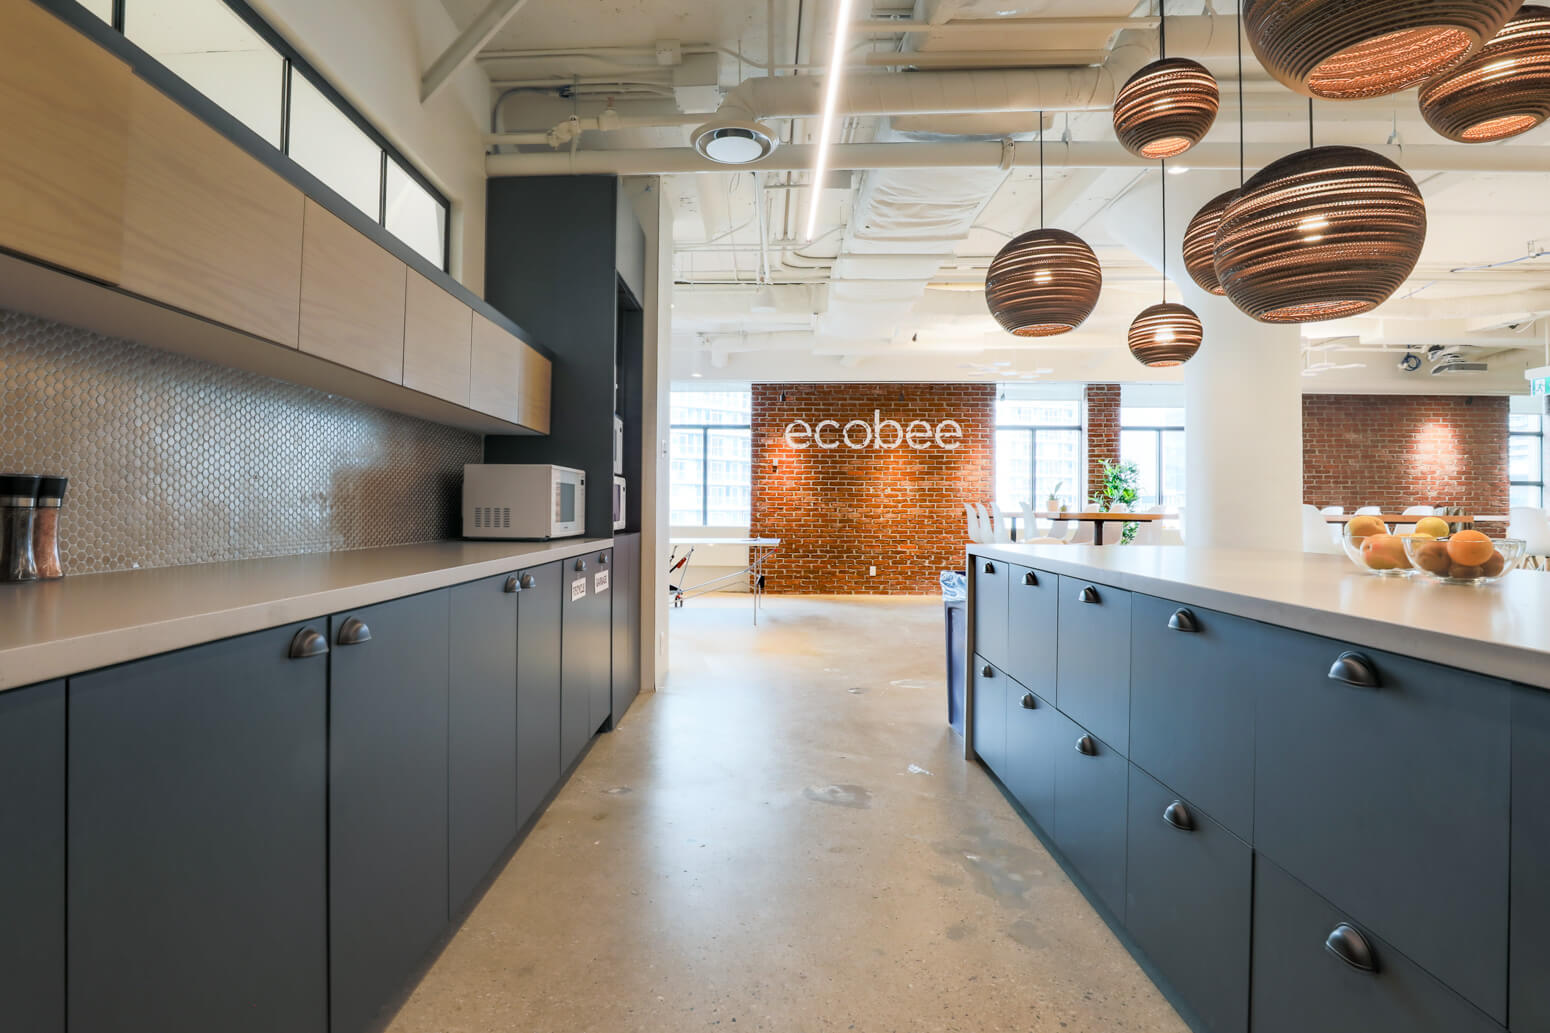 Ecobee Toronto Office Killer Spaces-28